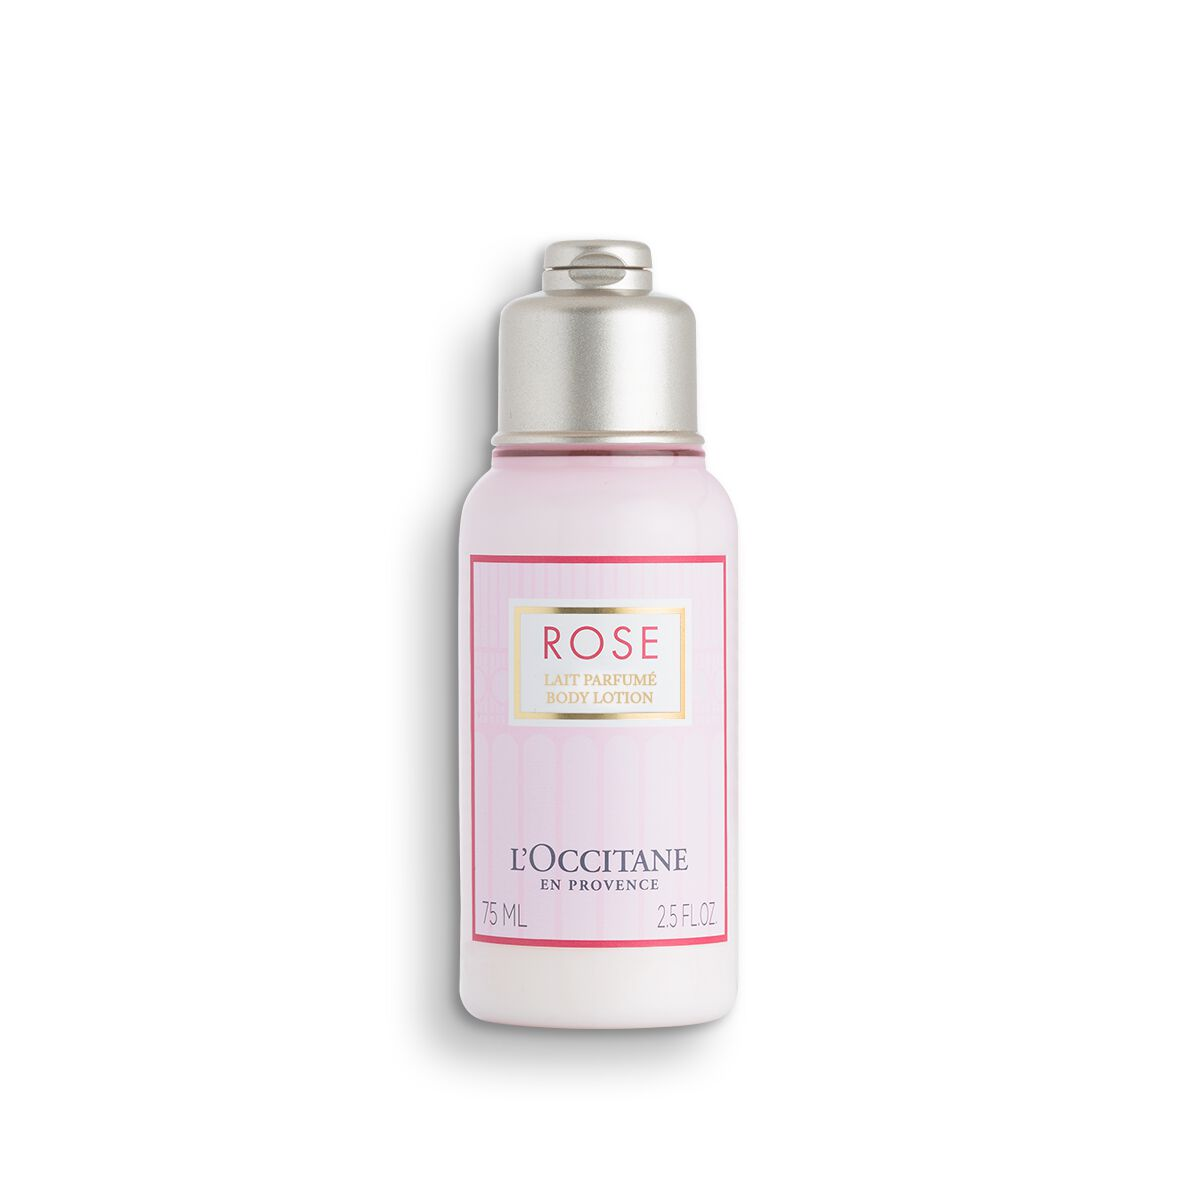 Rose Body Lotion 2.5 fl. oz.